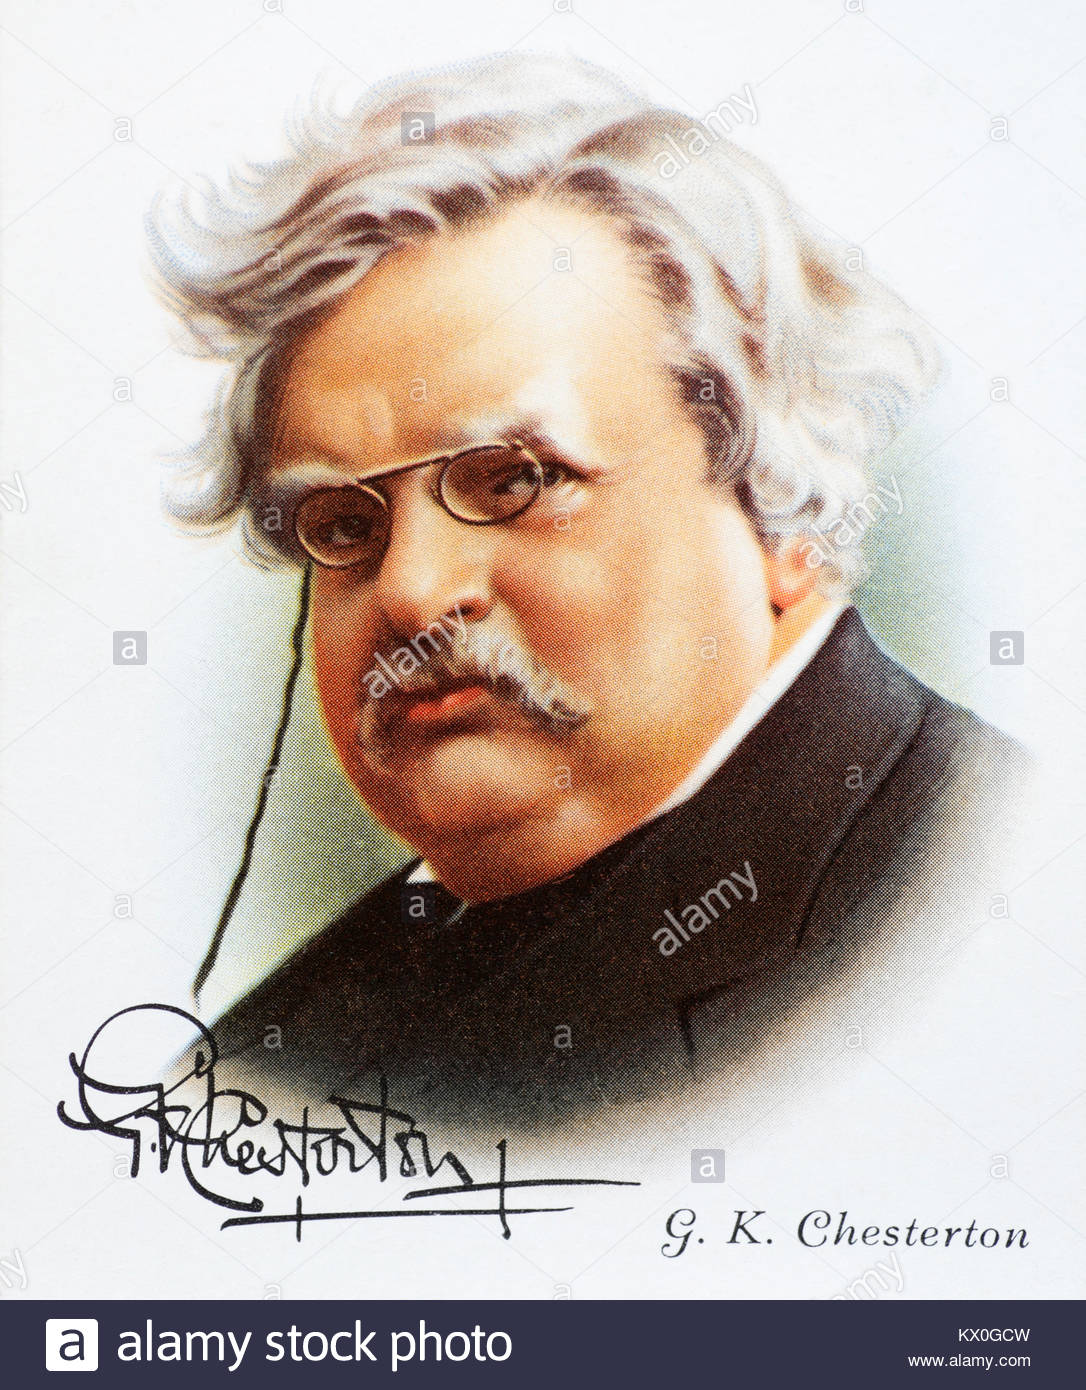 G.K. Chesterton was an English writer, poet and journalist 1874 – 1936 - Stock Image